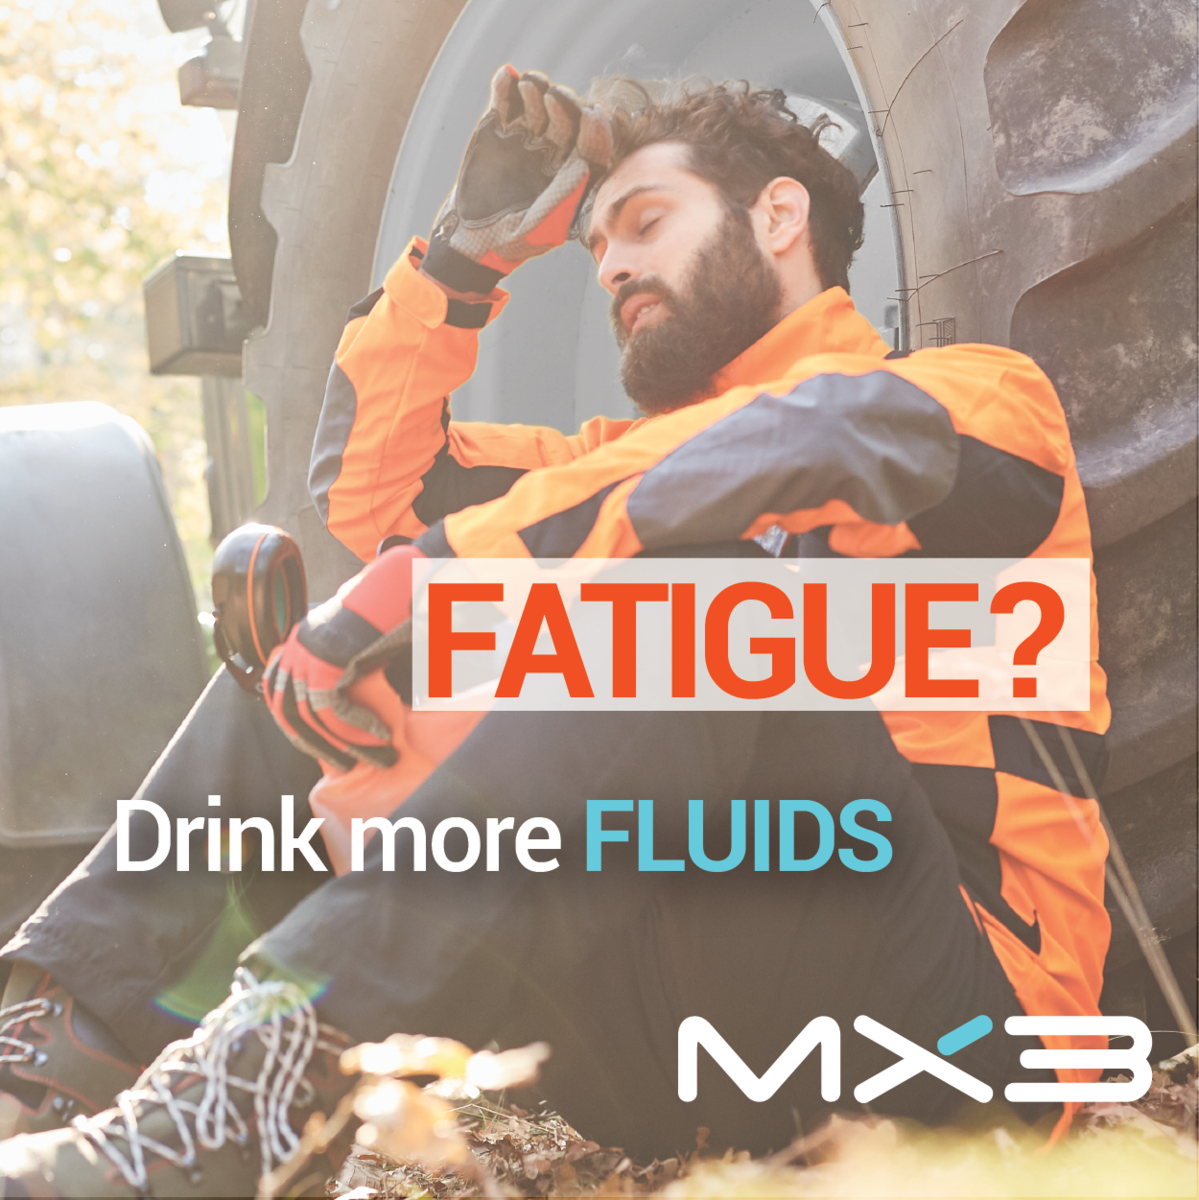 Fight fatigue with fluids